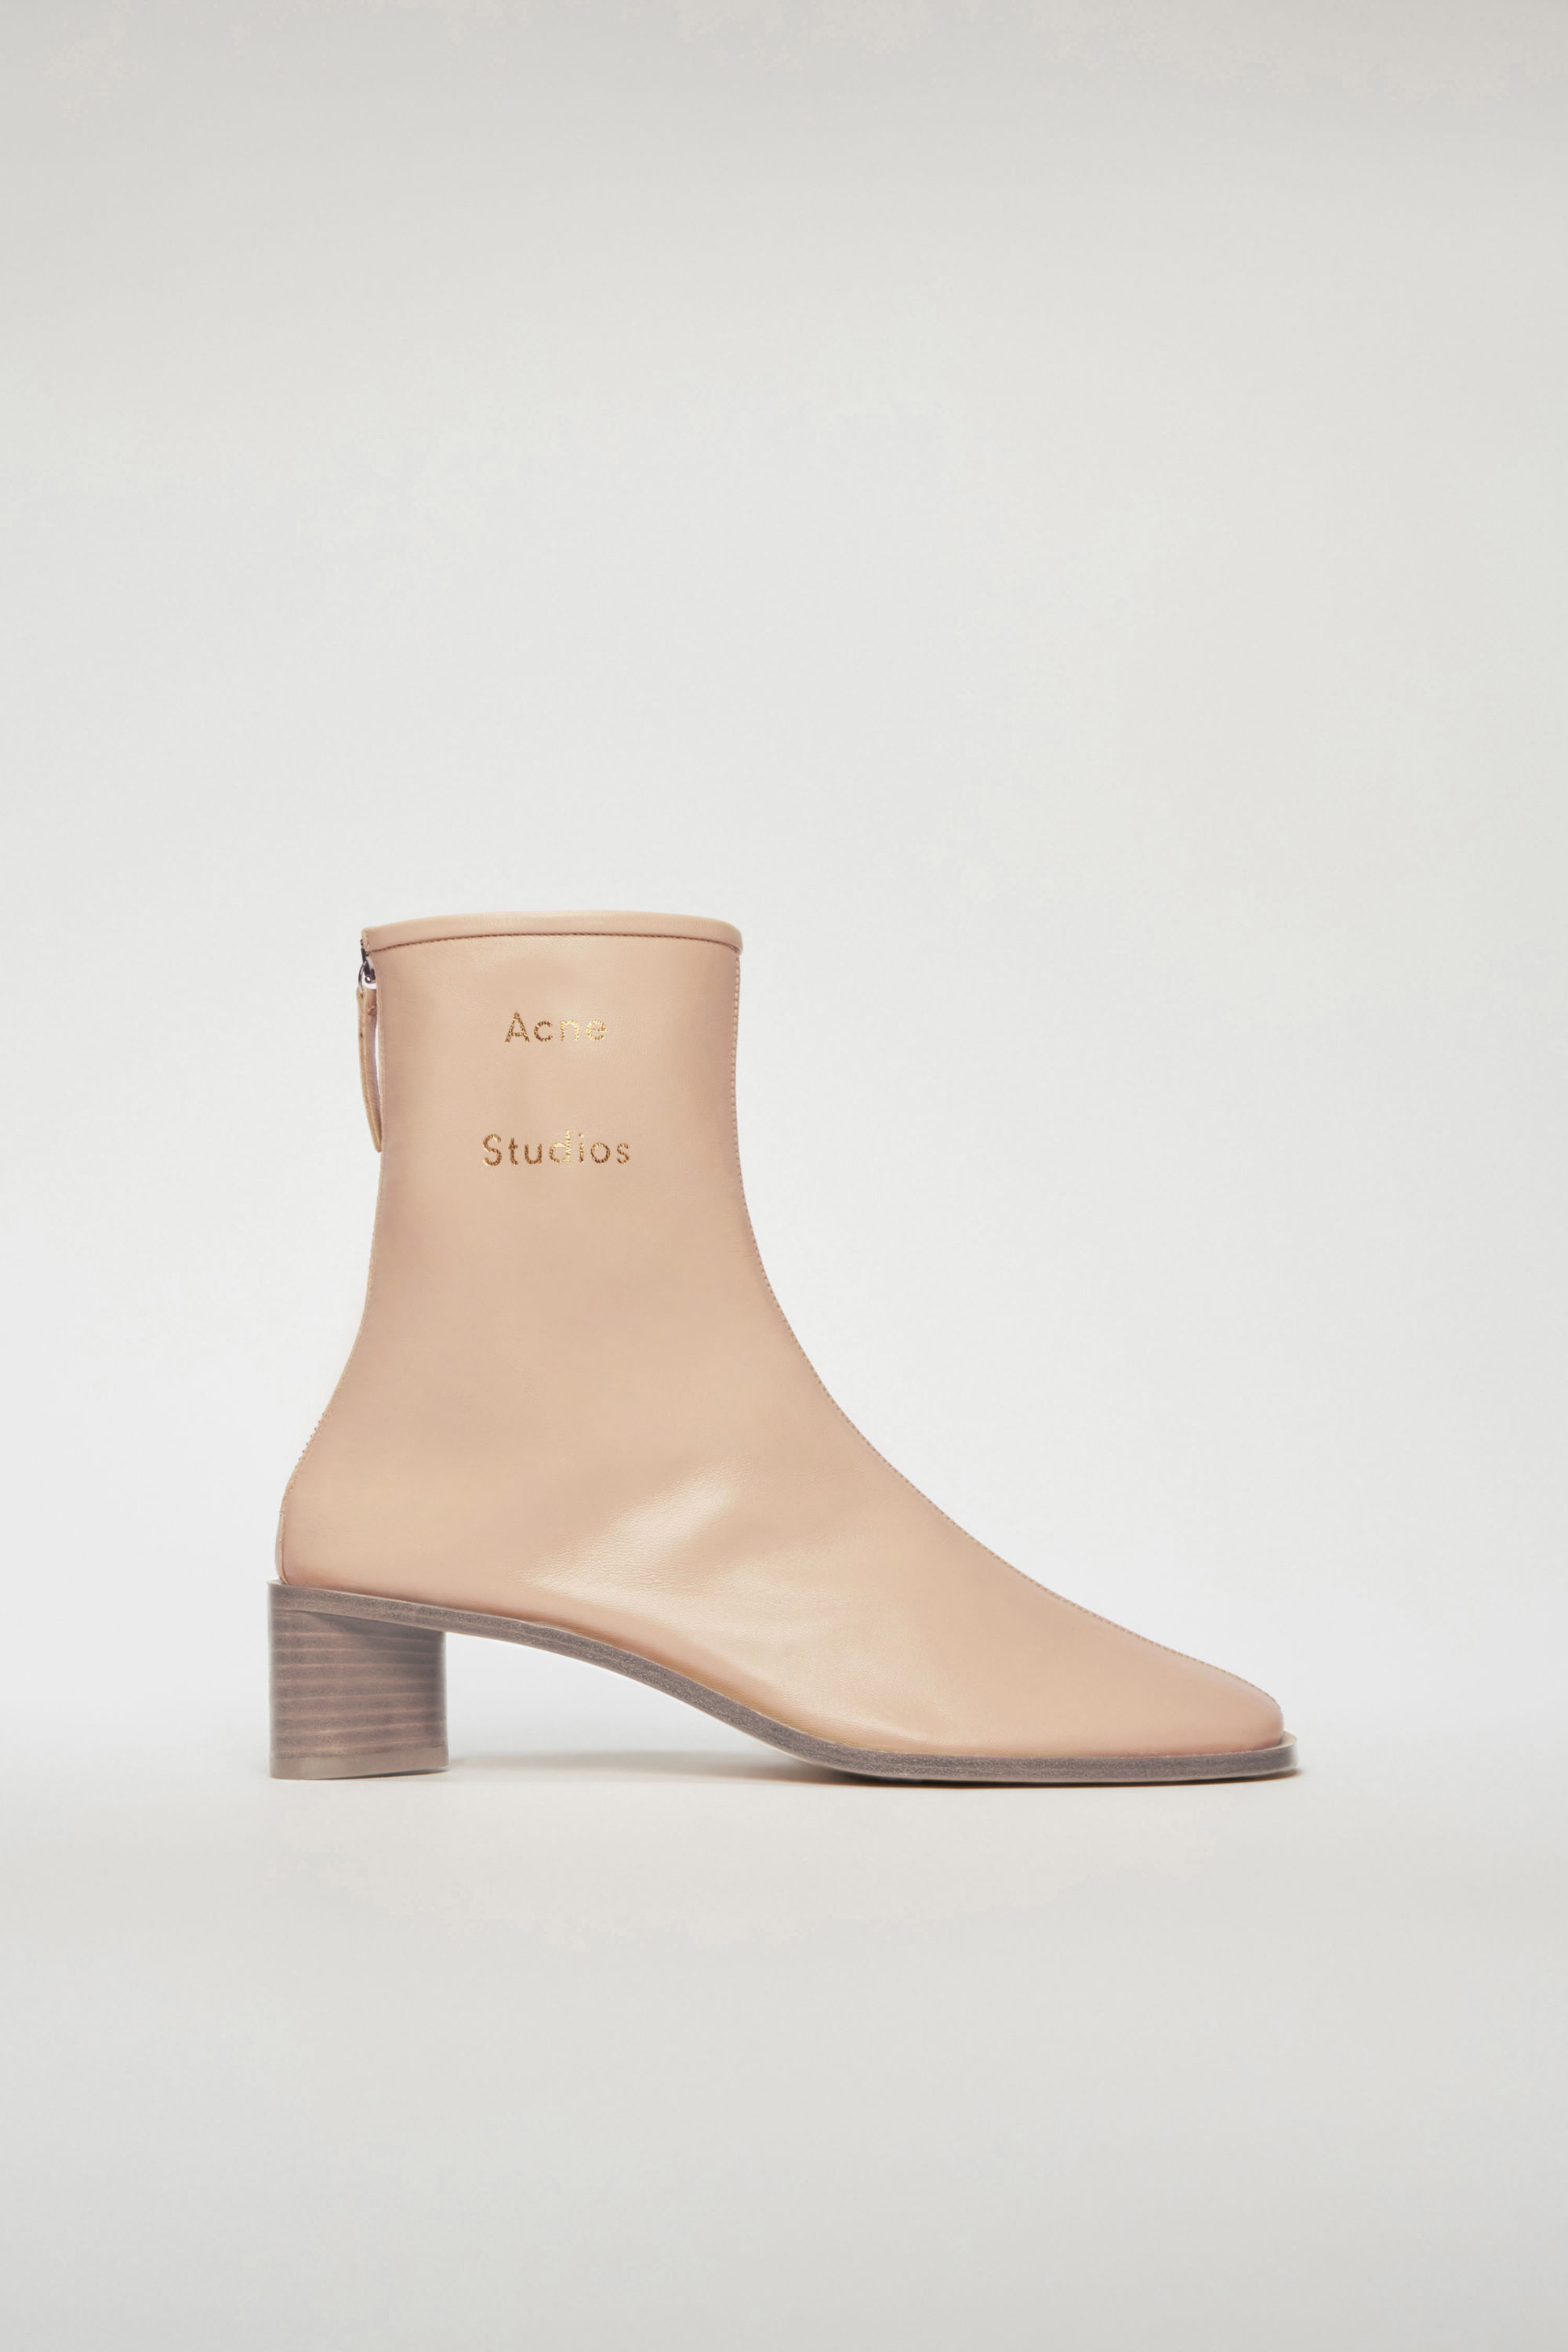 acne track boots